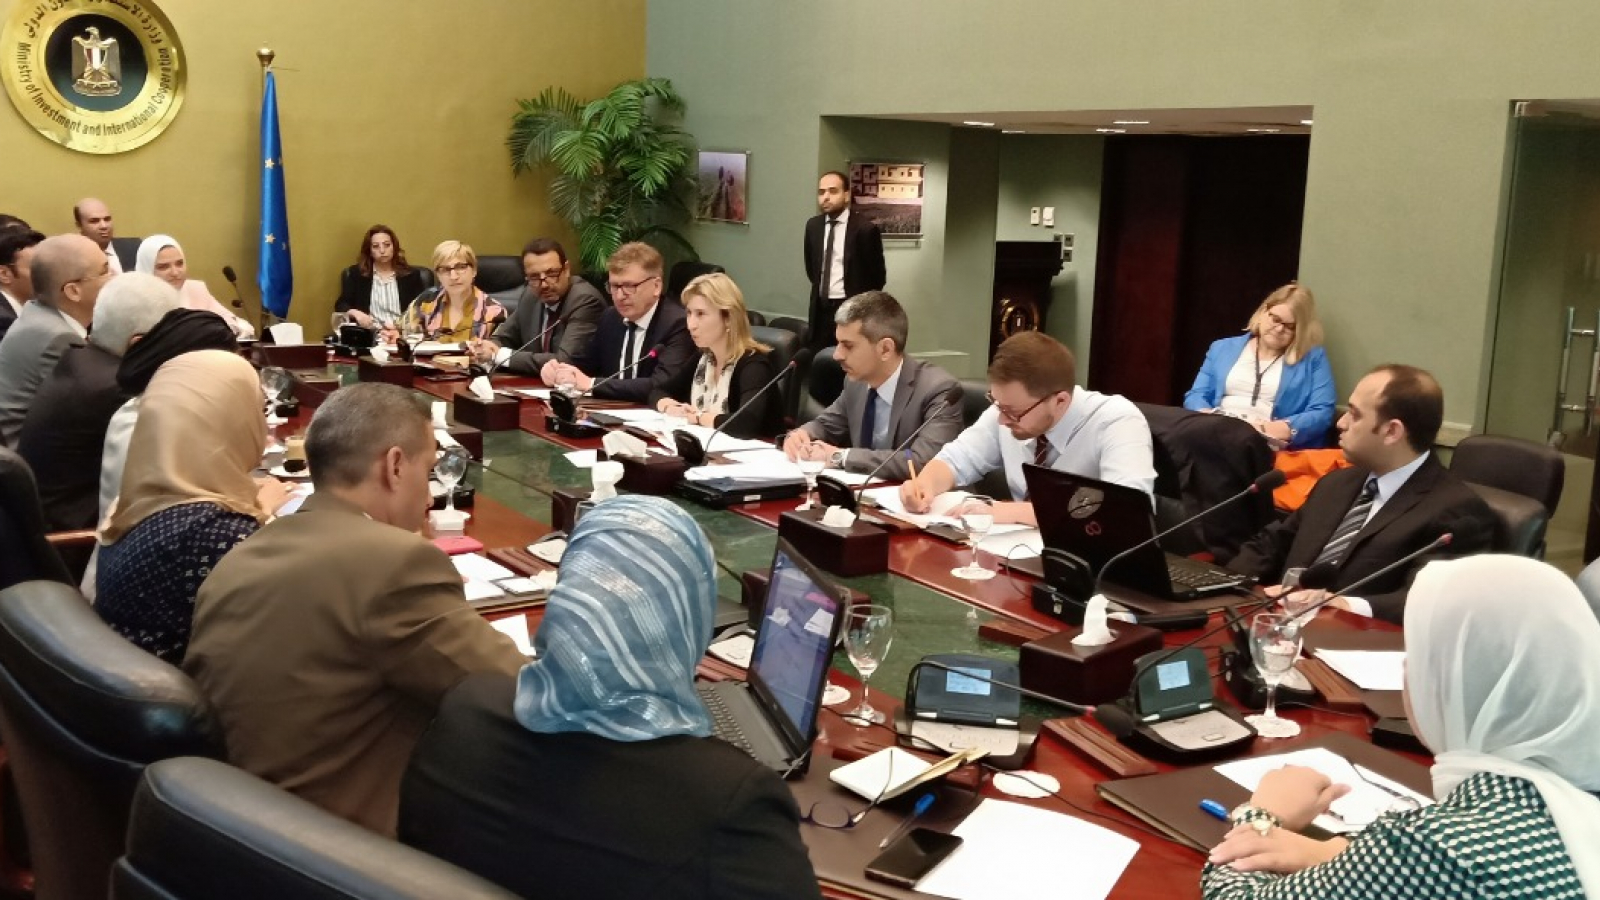 EU Egypt 7th meeting of the Subcommittee on Transport, Energy and Environment